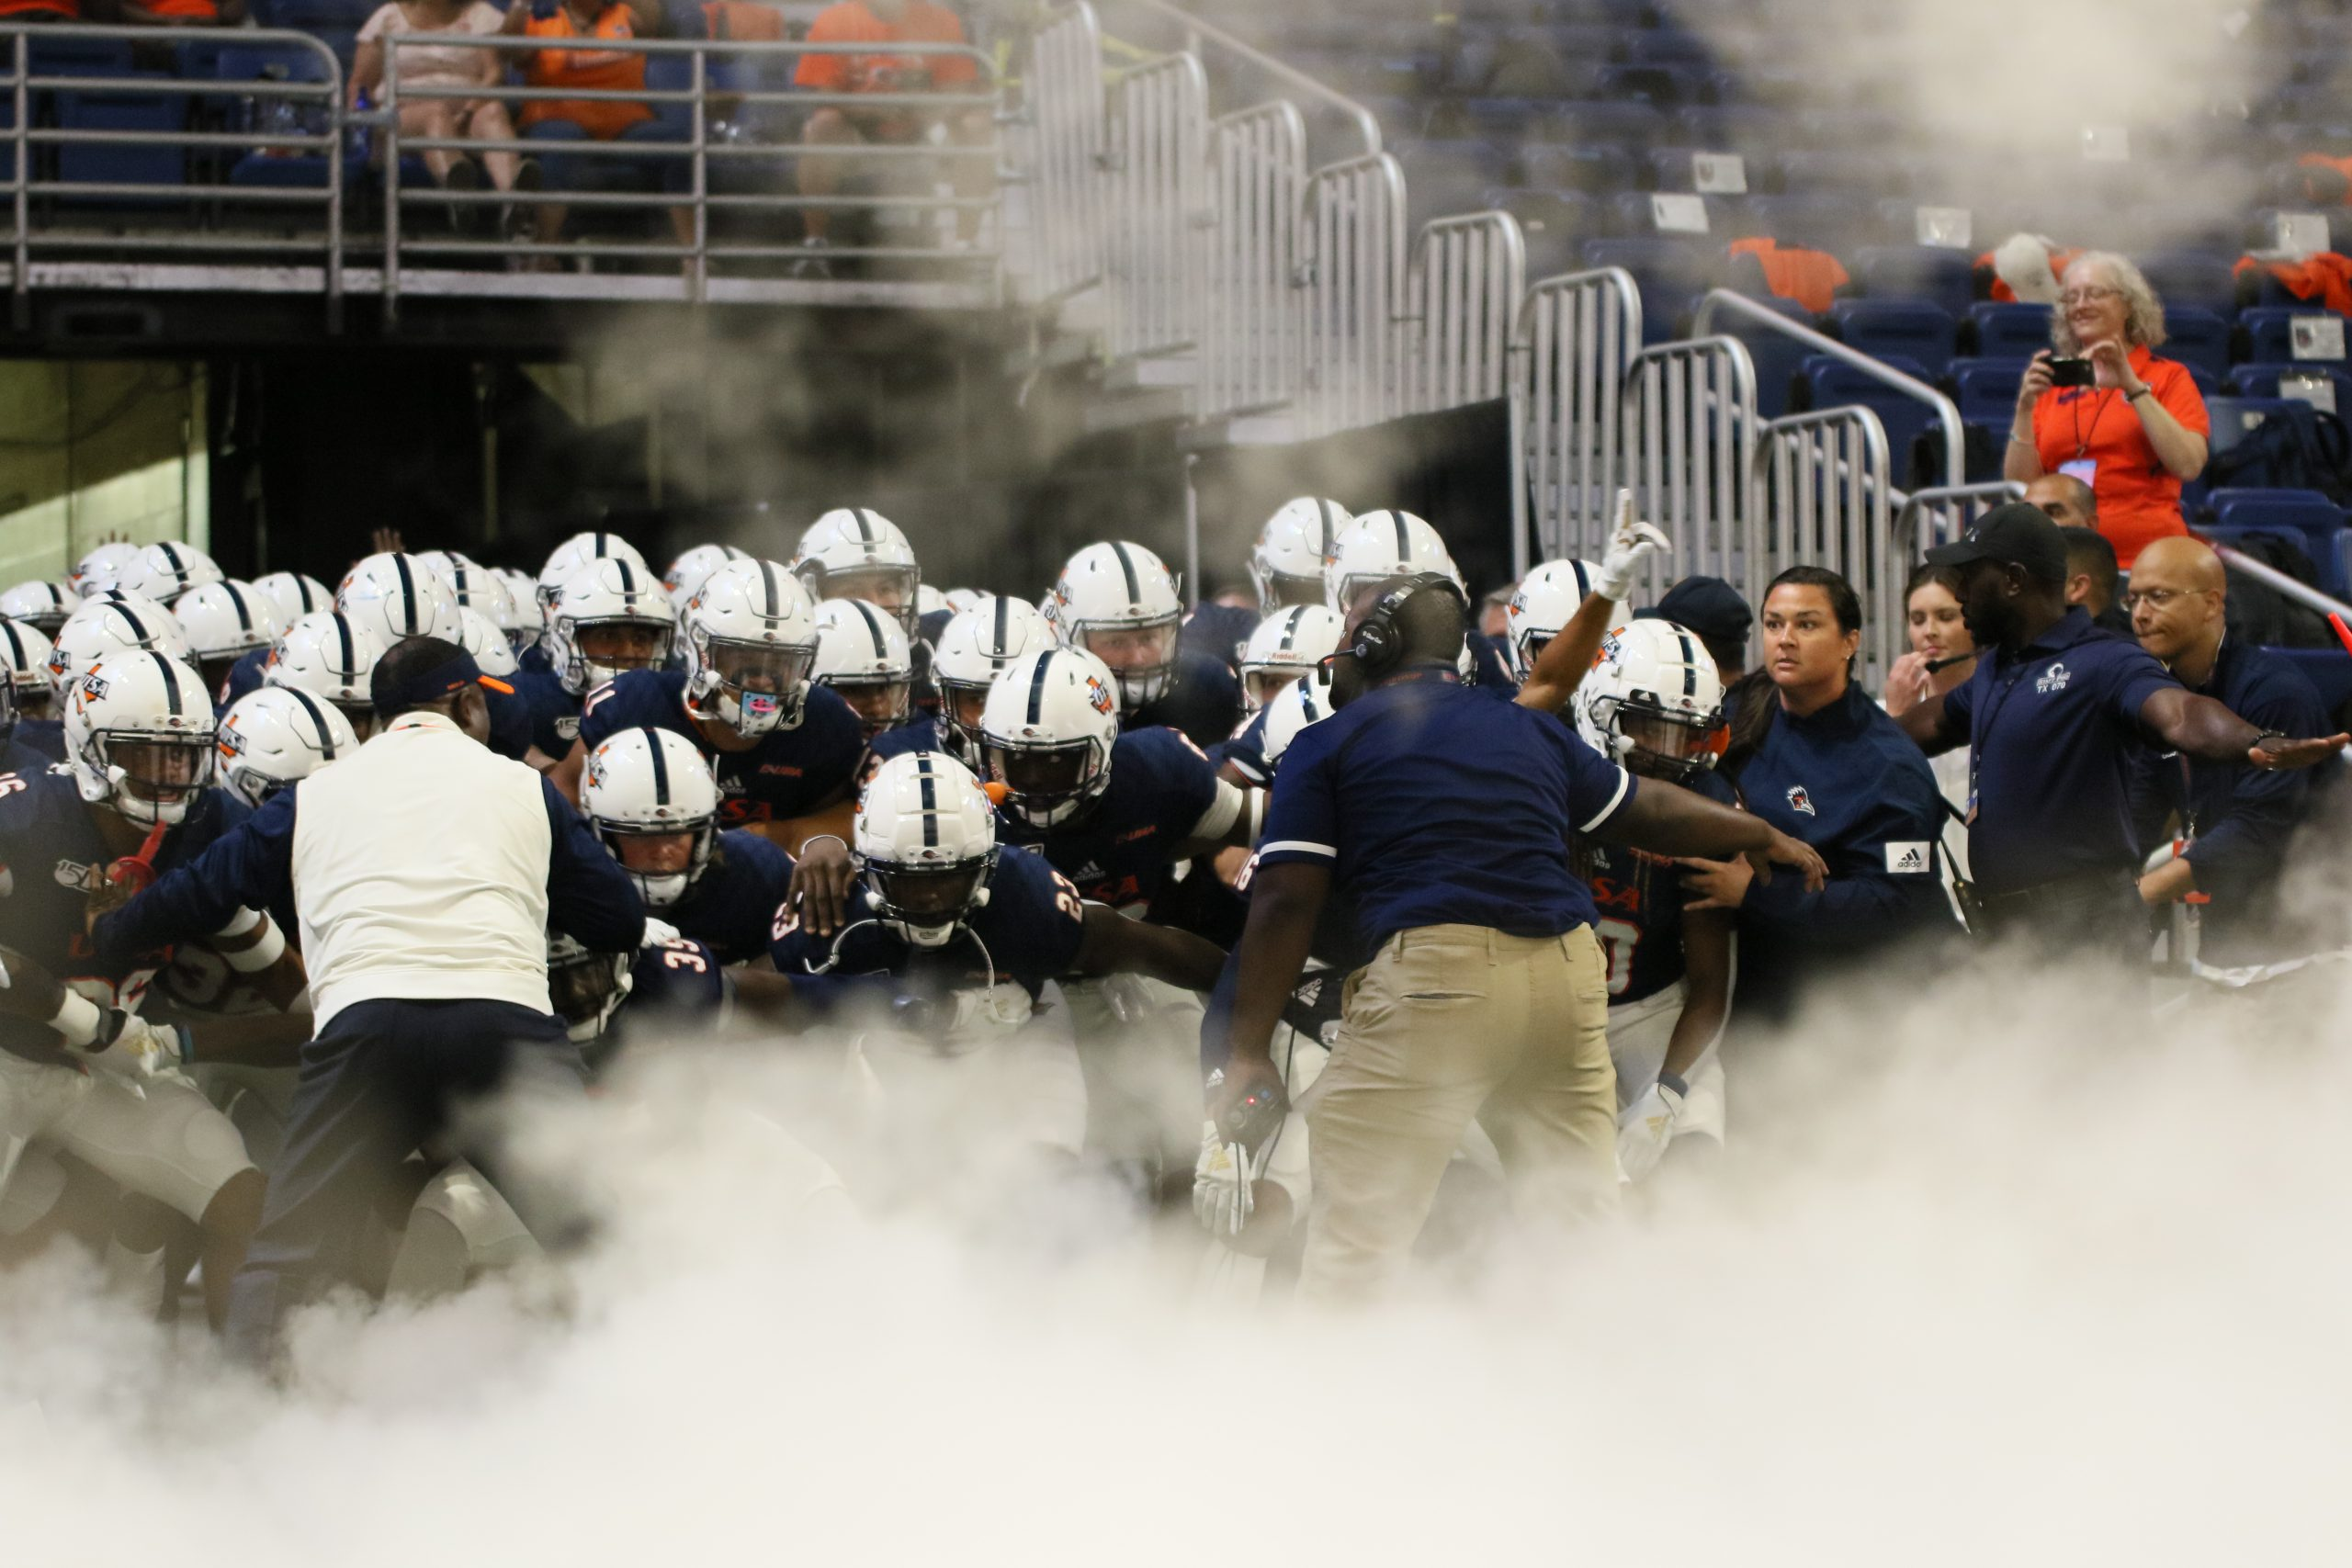 Frank Wilson and his team taking the field before a game. Photo by Lindsey Thomas